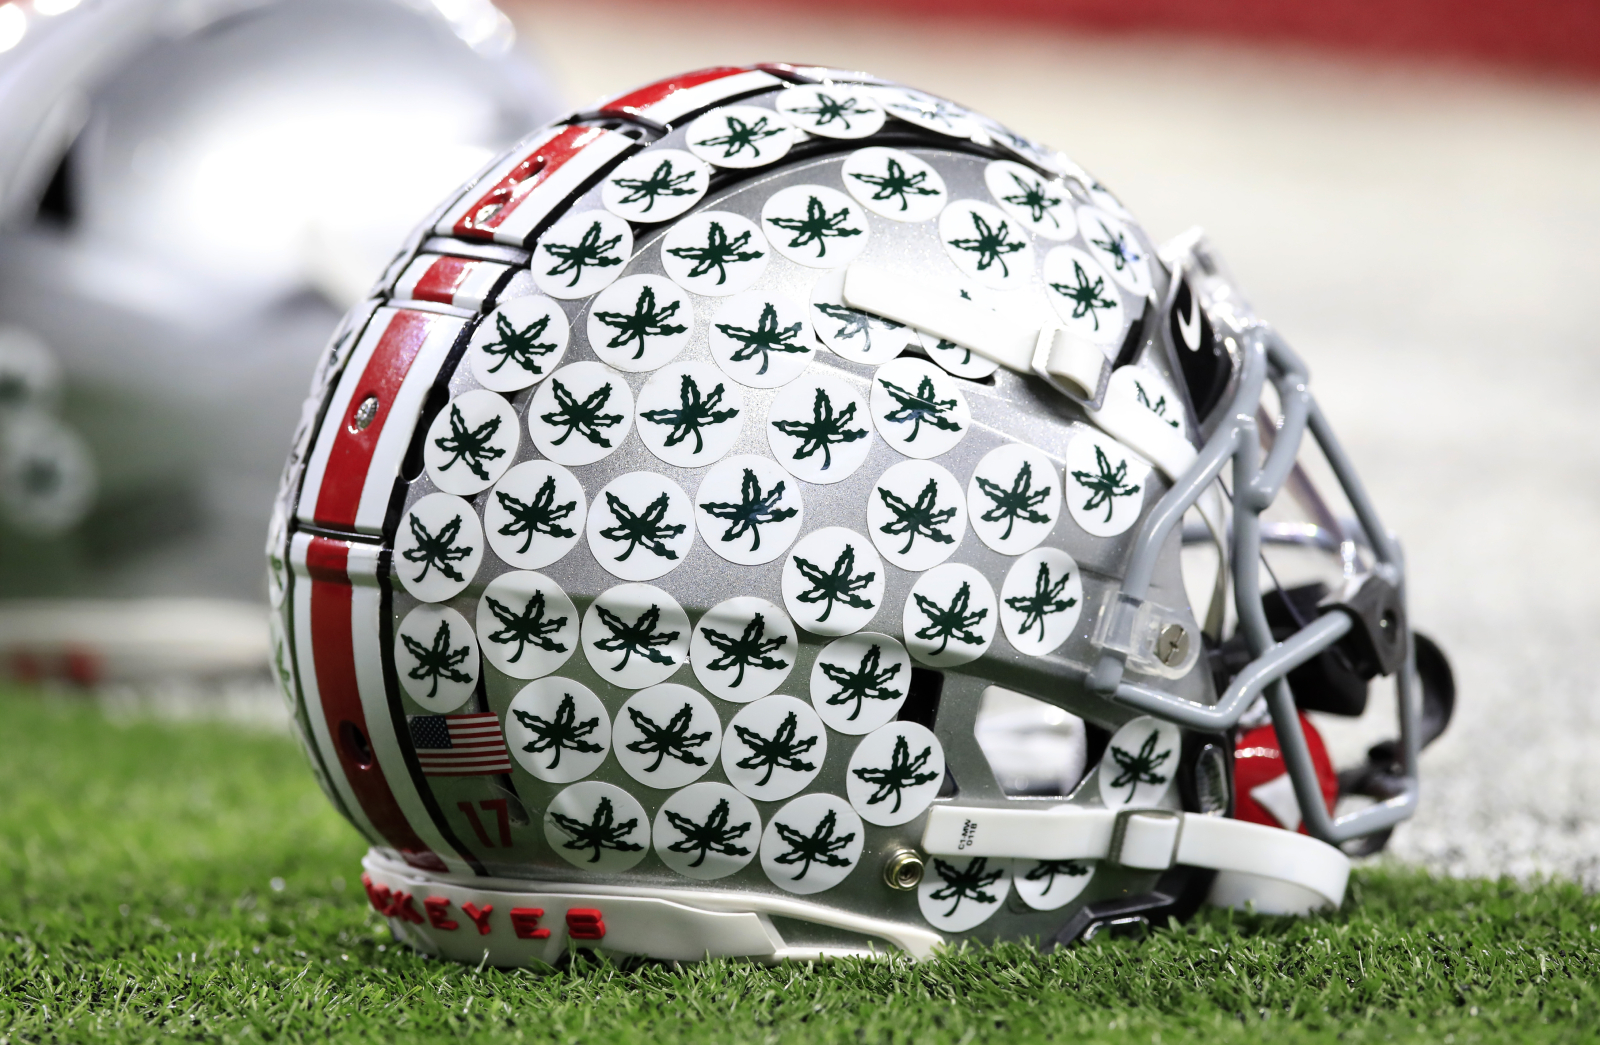 Ohio State is one of the best college football programs in the country. So, why does Ohio State put stickers on its players' helmets?